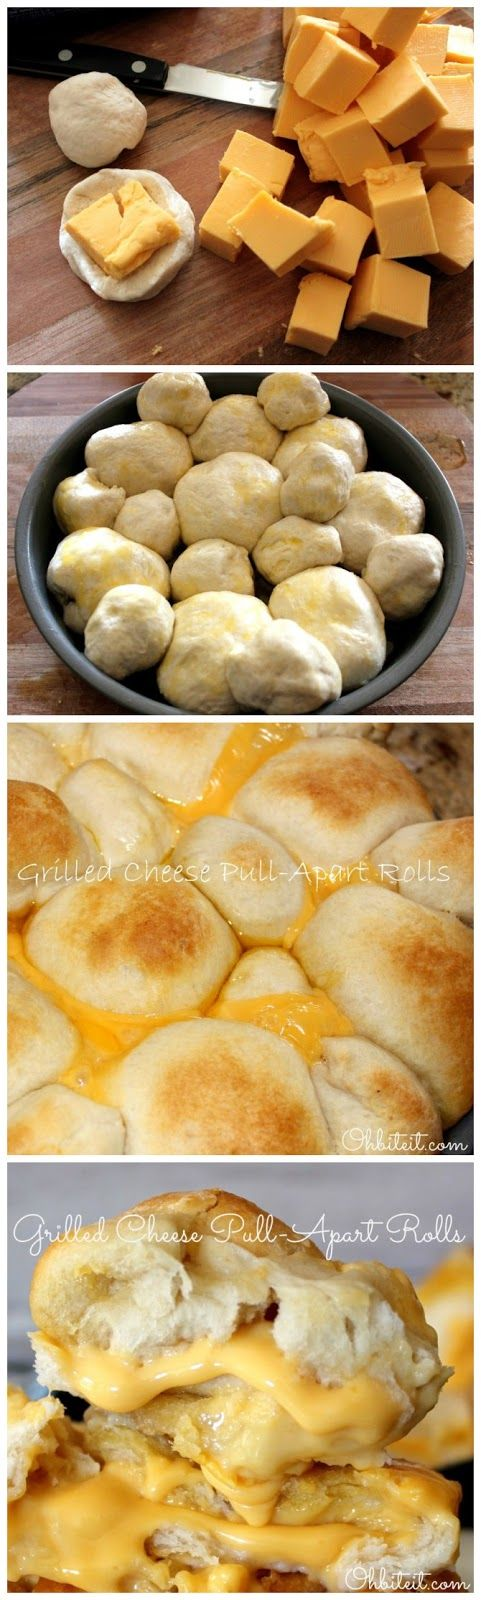 Grilled Cheese Pull-Apart Rolls~T~ The kids love these.